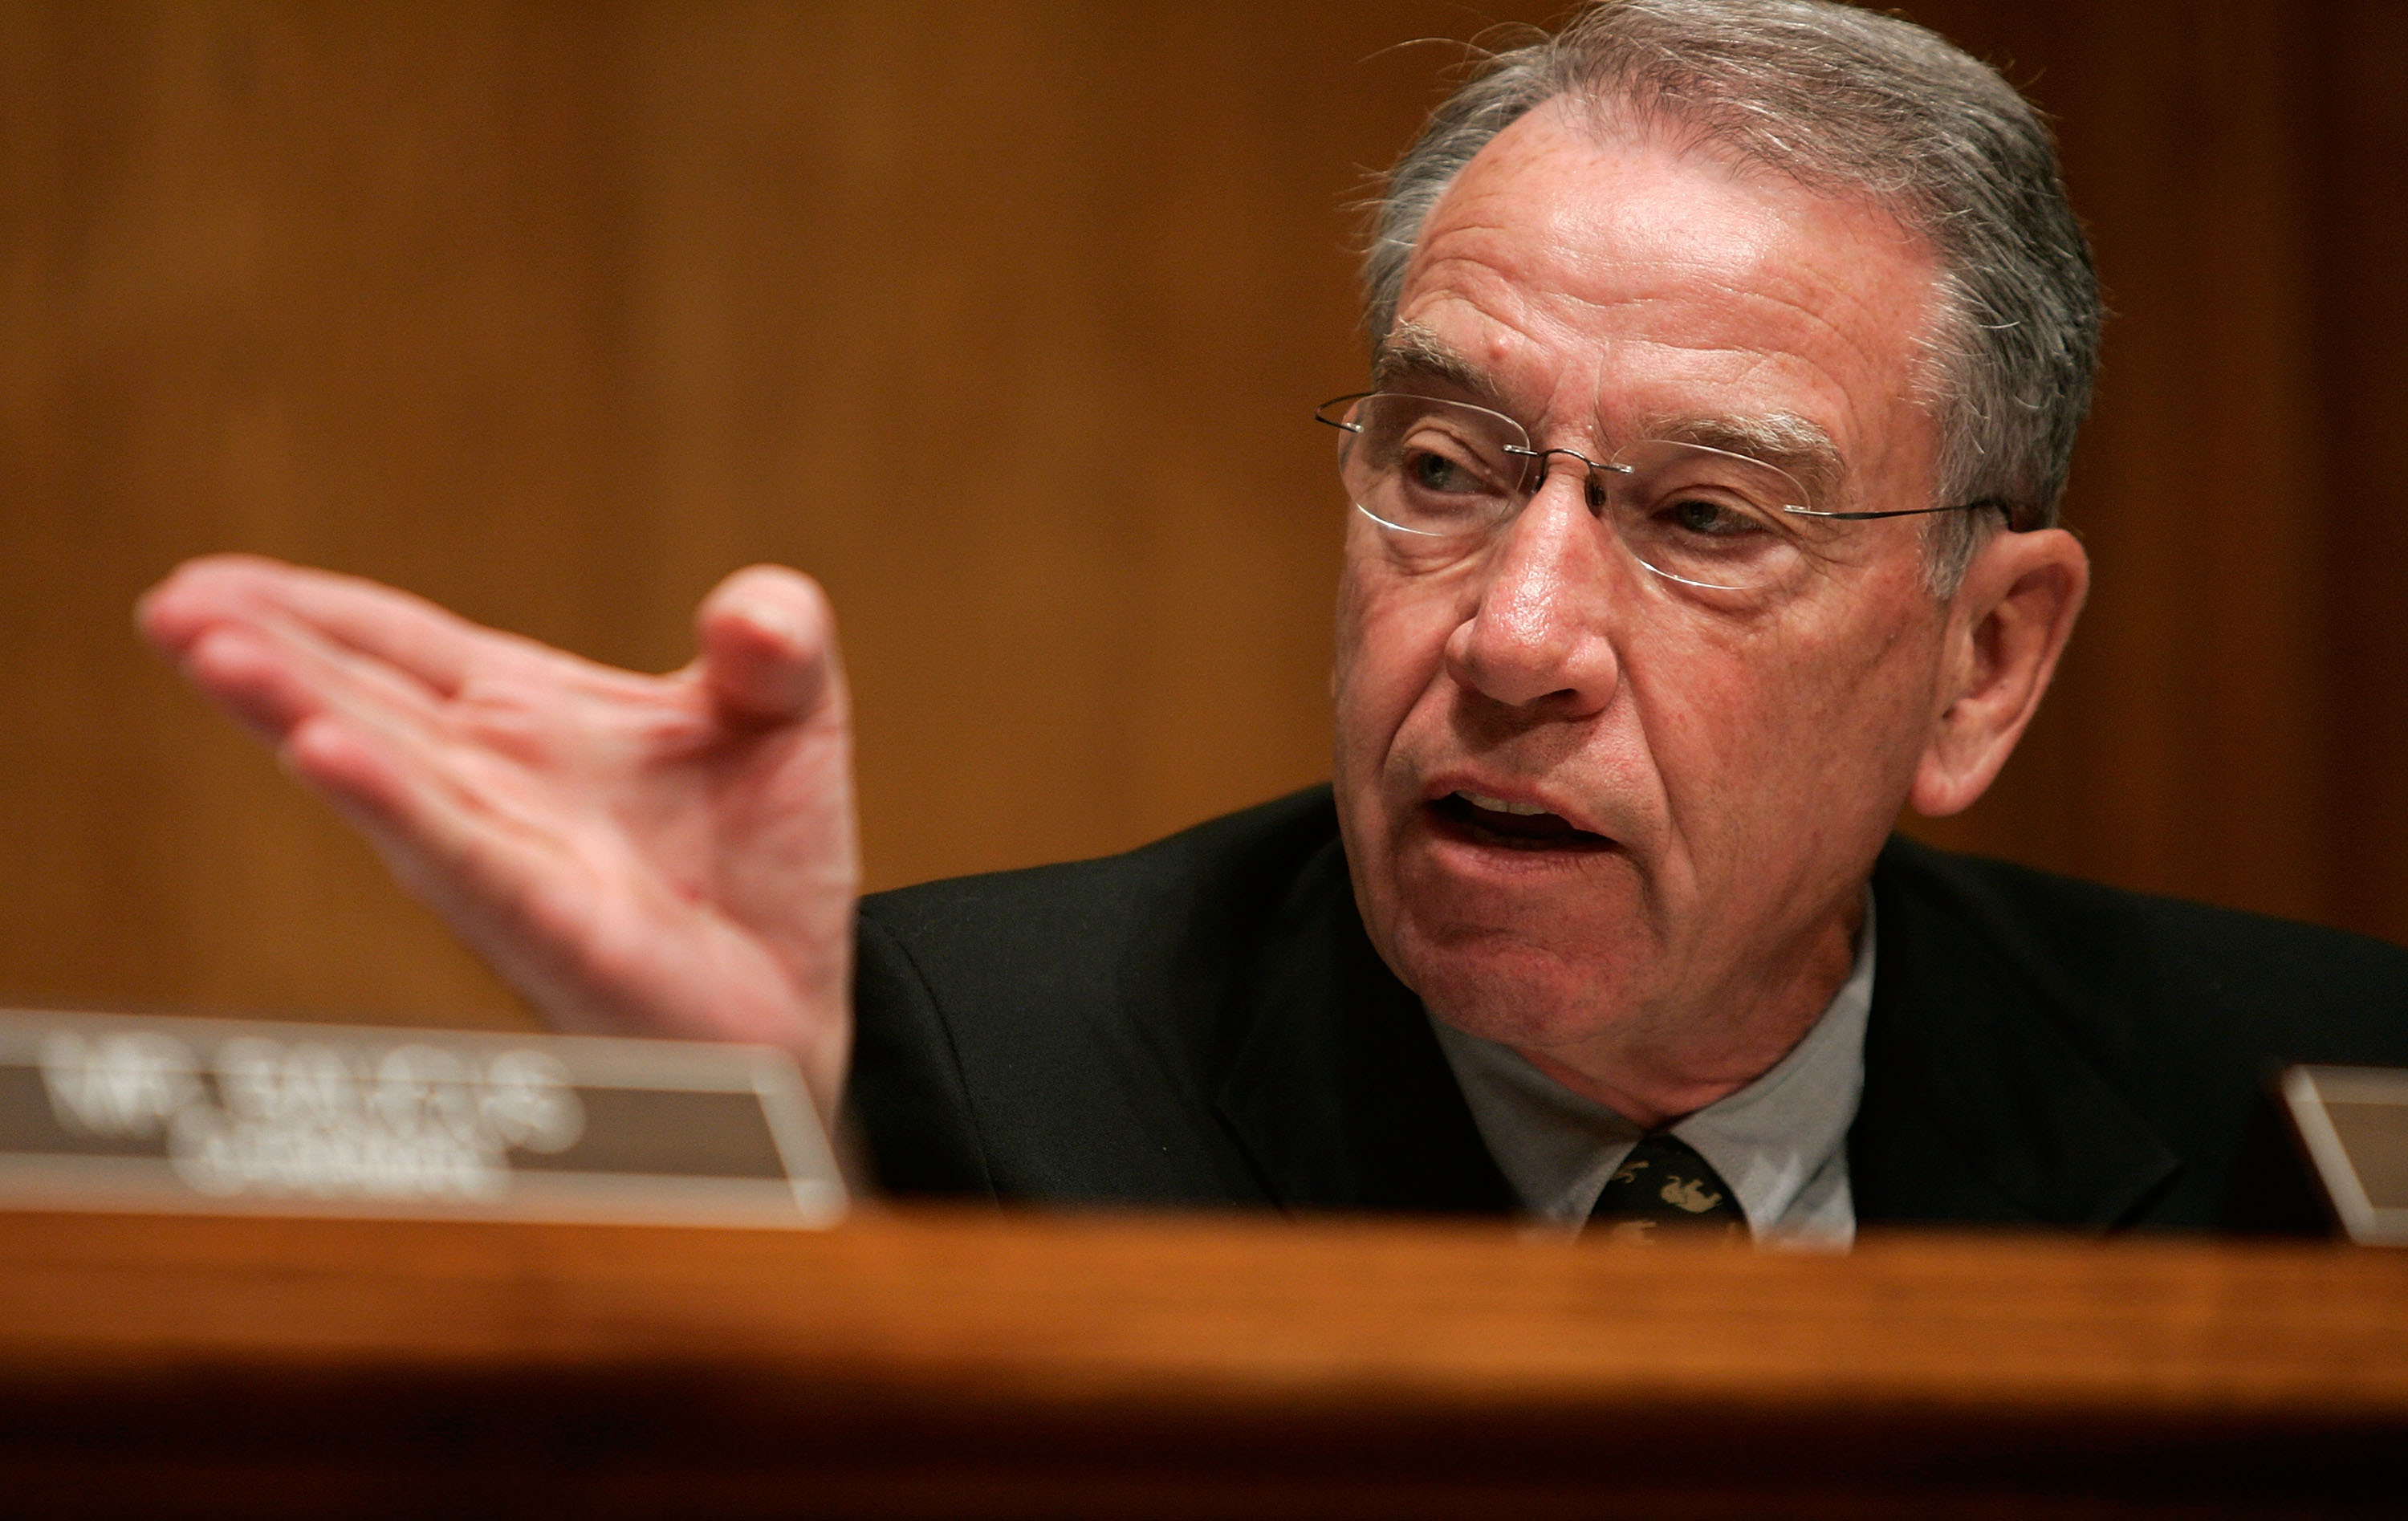 Sen. Chuck Grassley asked today whether the IRS obtained a search warrant before reading private Facebook or Twitter messages. He didn't get an answer.